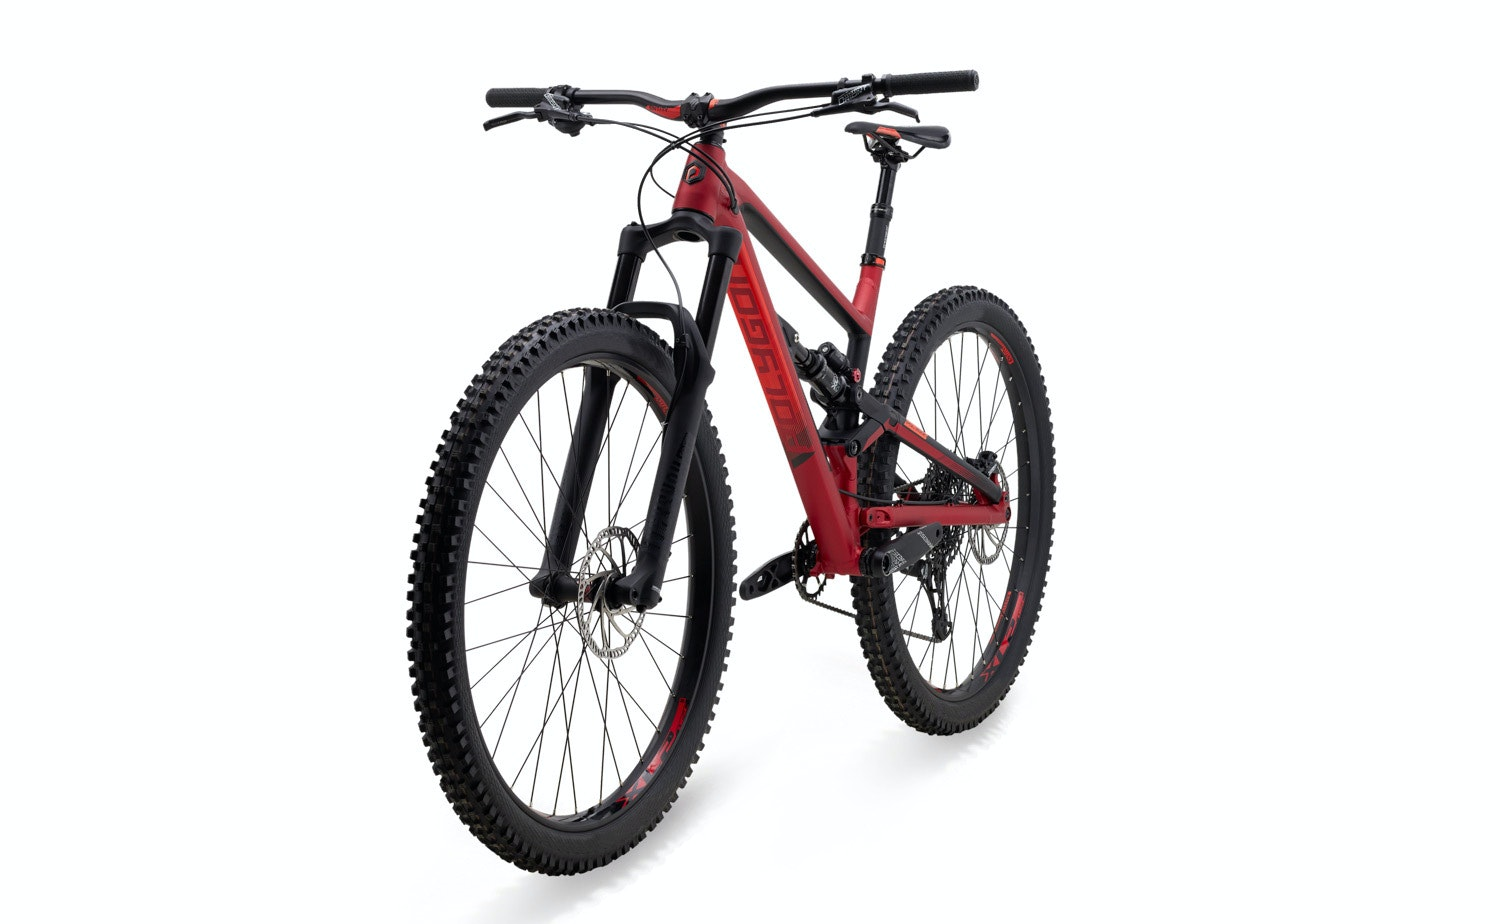 81360e90e 2019 Polygon Siskiu N8 Dual Suspension Mountain Bike